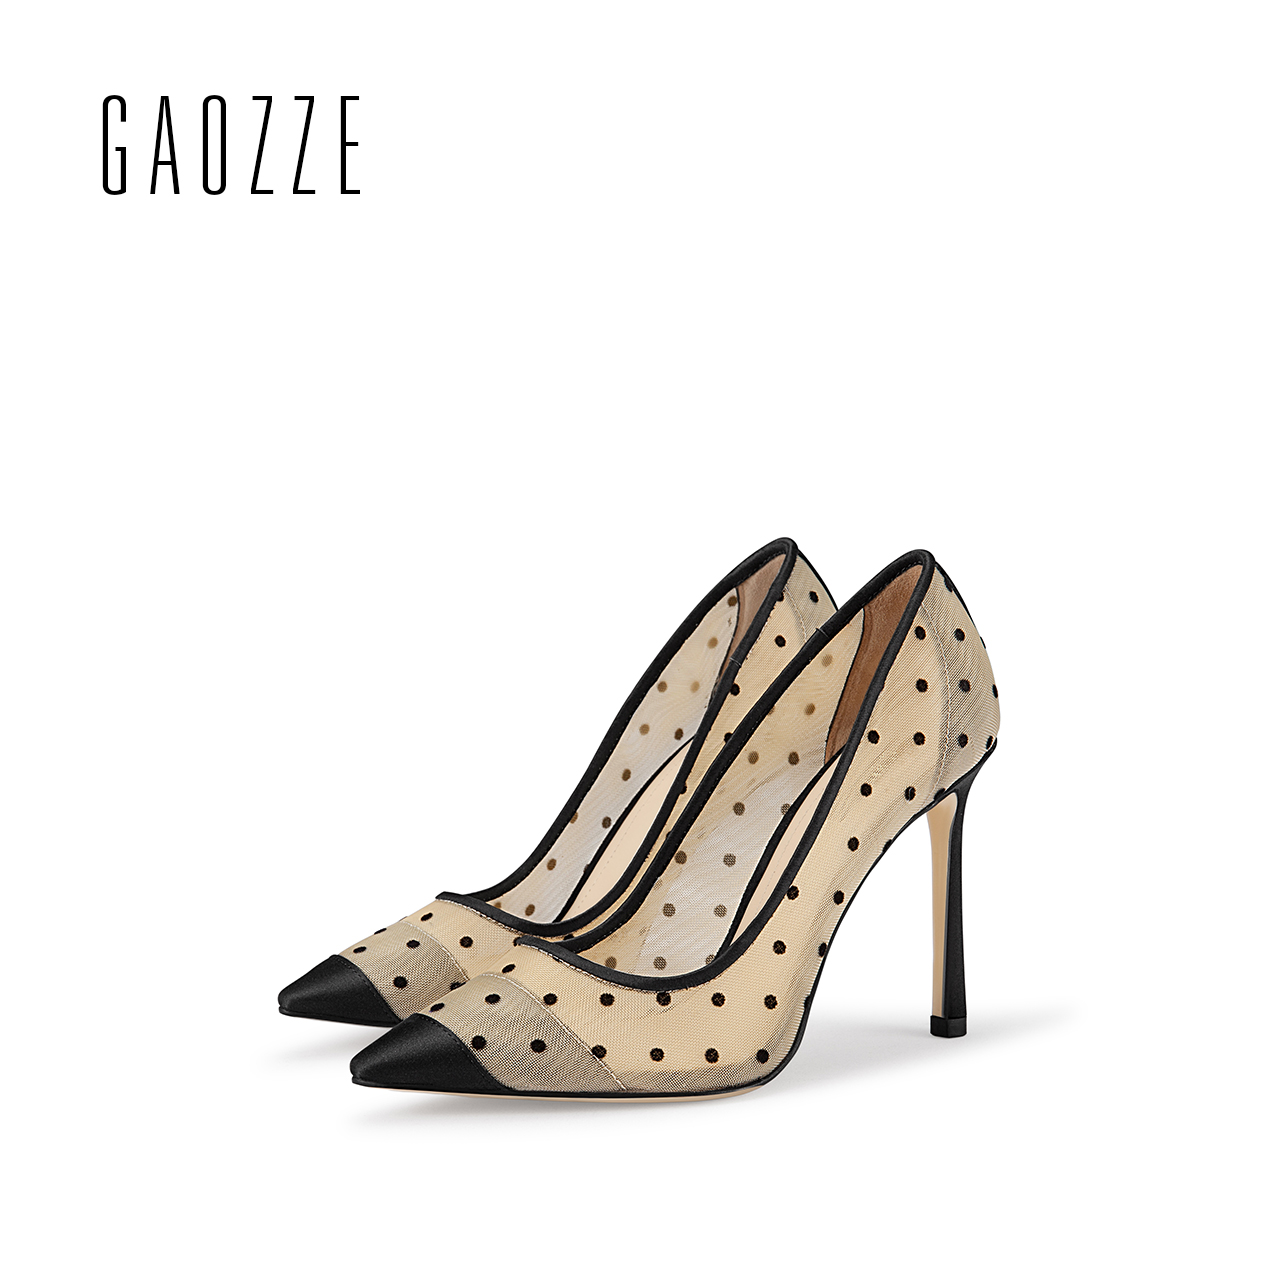 GAOZZE Fashion Polka Dot Mesh Women Sexy Stiletto High Heel Shoes Pointed Toe Party Shoes Pumps Women Heels Pumps 2018 Spring wholesale lttl new spring summer high heels shoes stiletto heel flock pointed toe sandals fashion ankle straps women party shoes